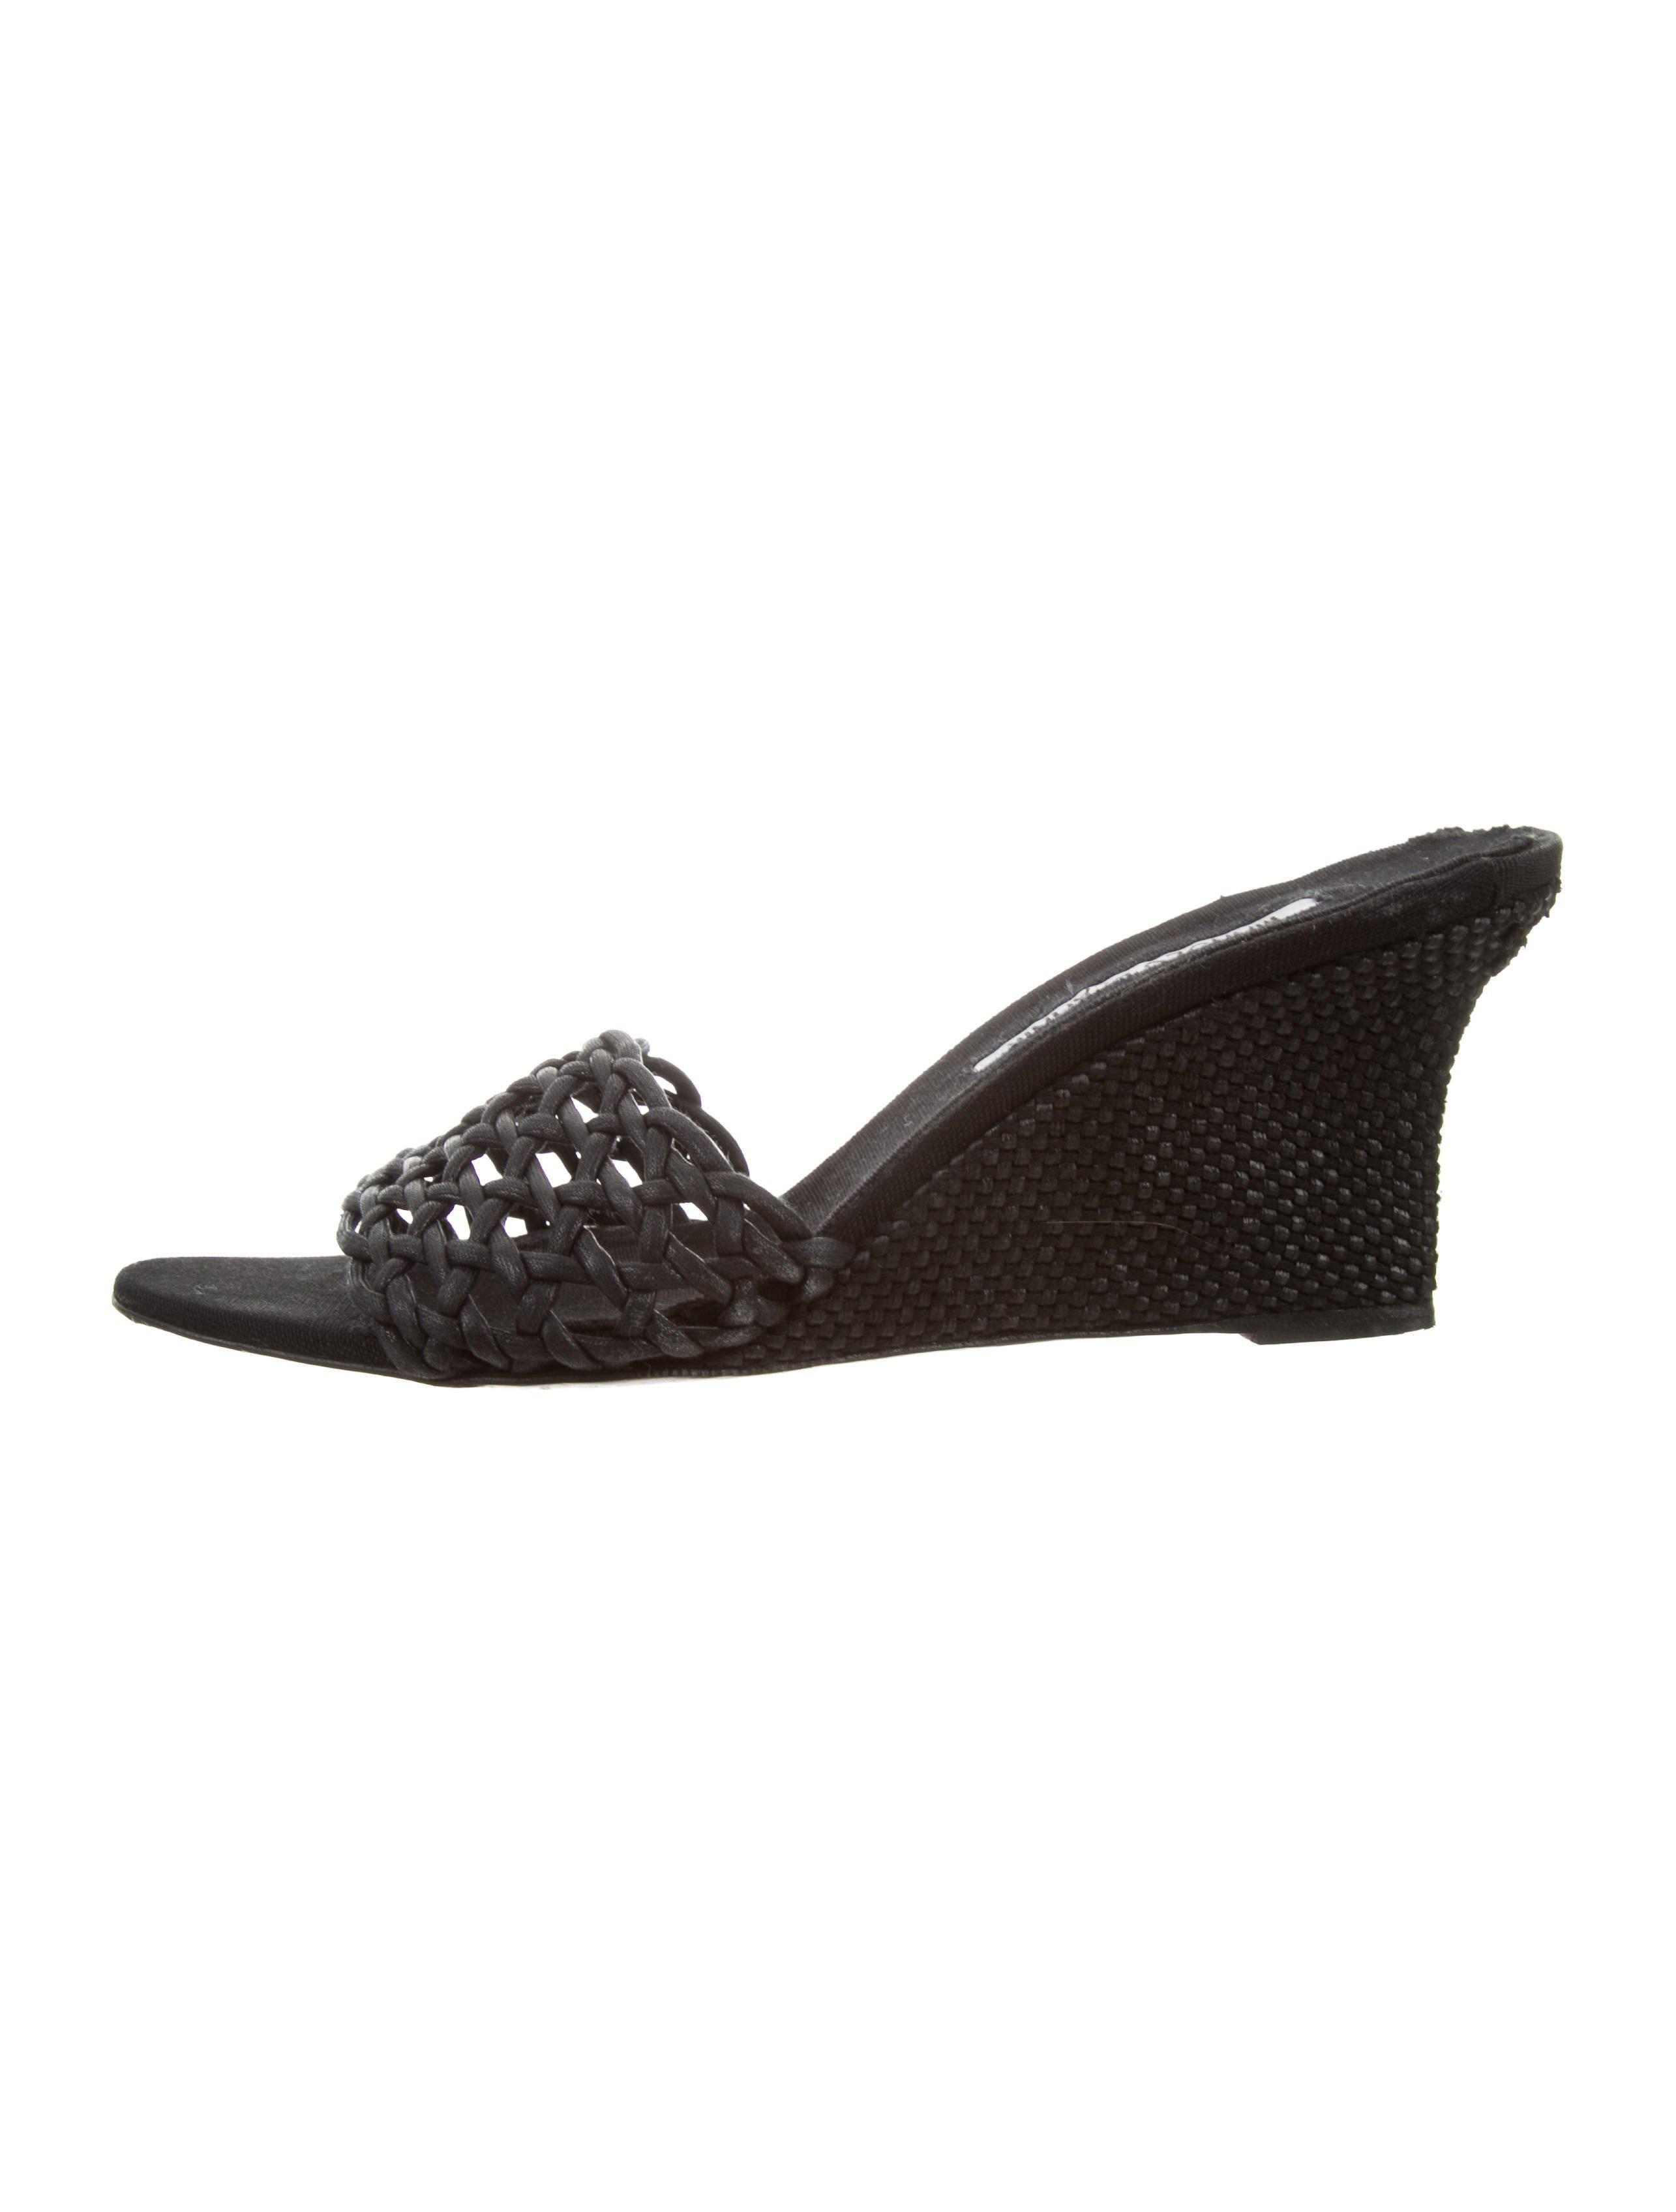 c2a26f87b609 Lyst - Manolo Blahnik Woven Coated Canvas Wedges in Black